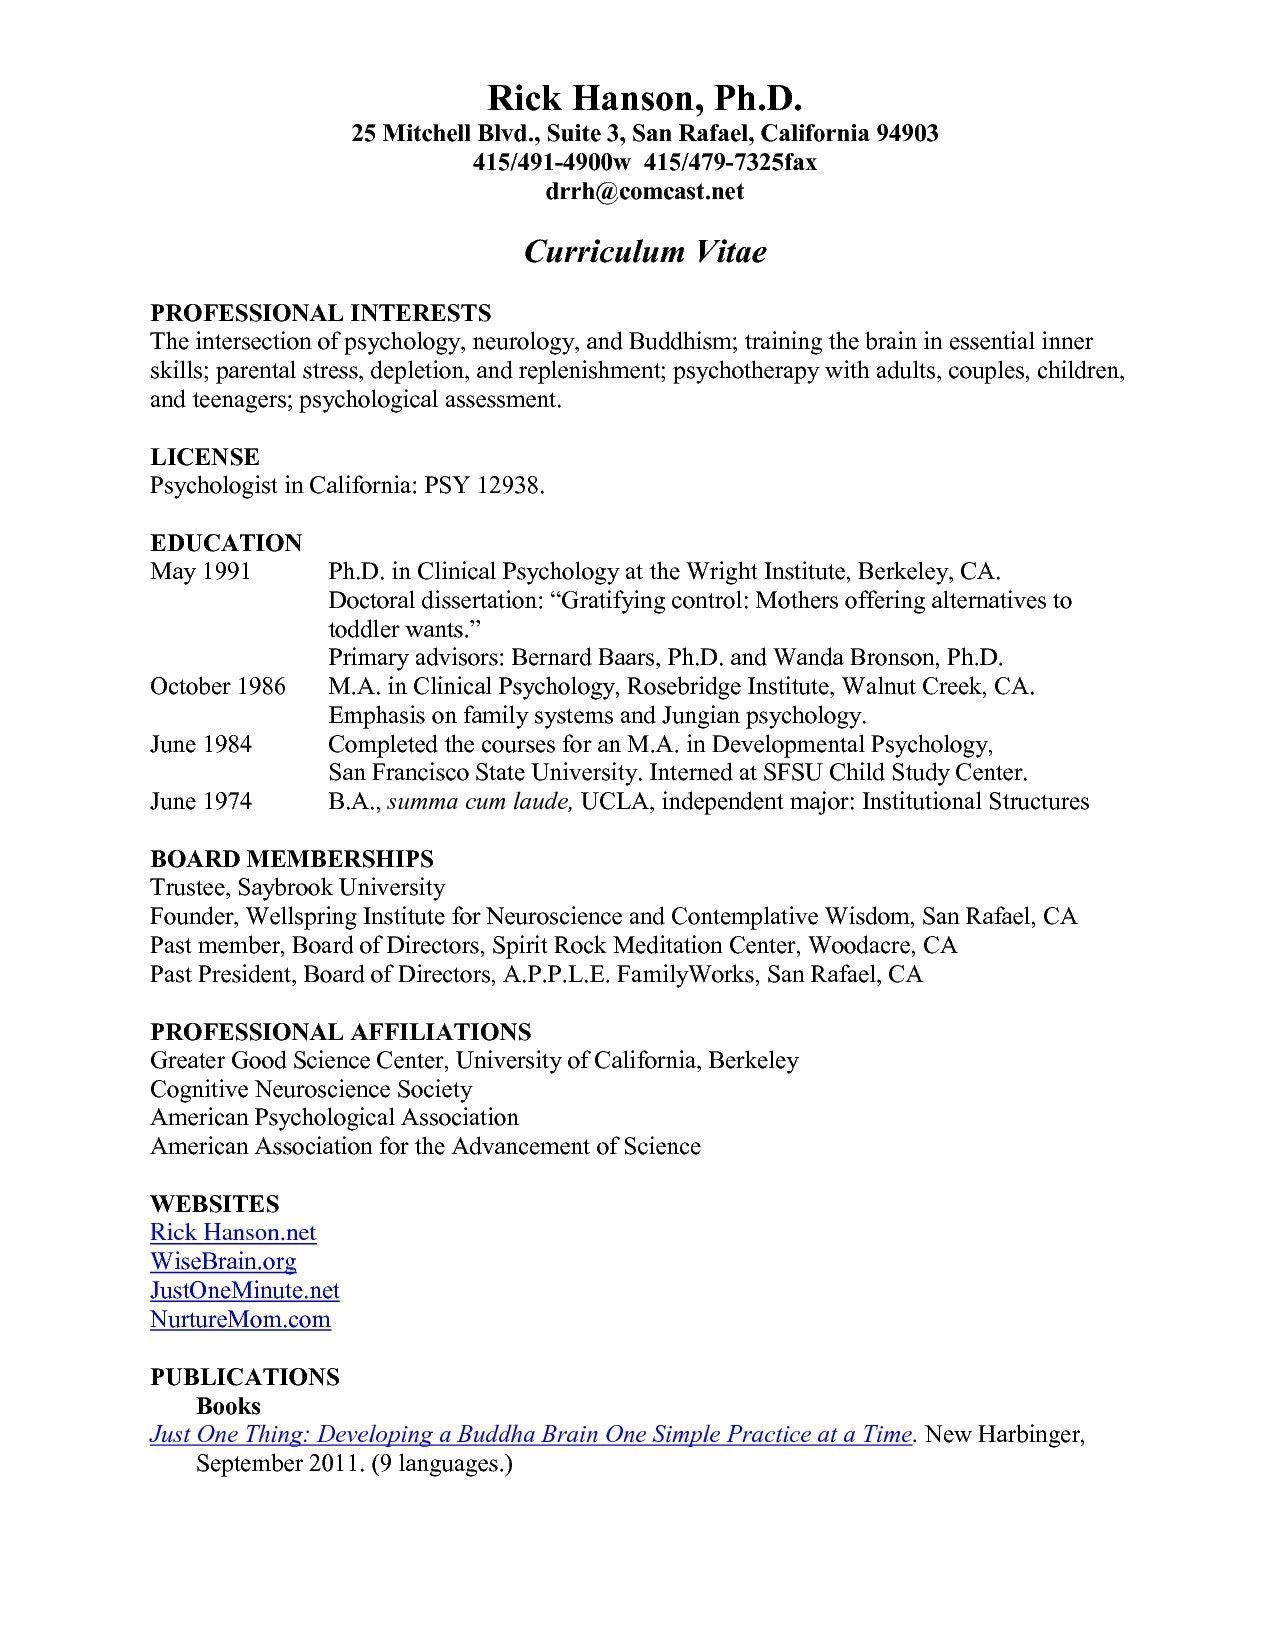 Cv Template Reddit Cvtemplate Reddit Template Job Resume Examples First Job Resume Good Resume Examples